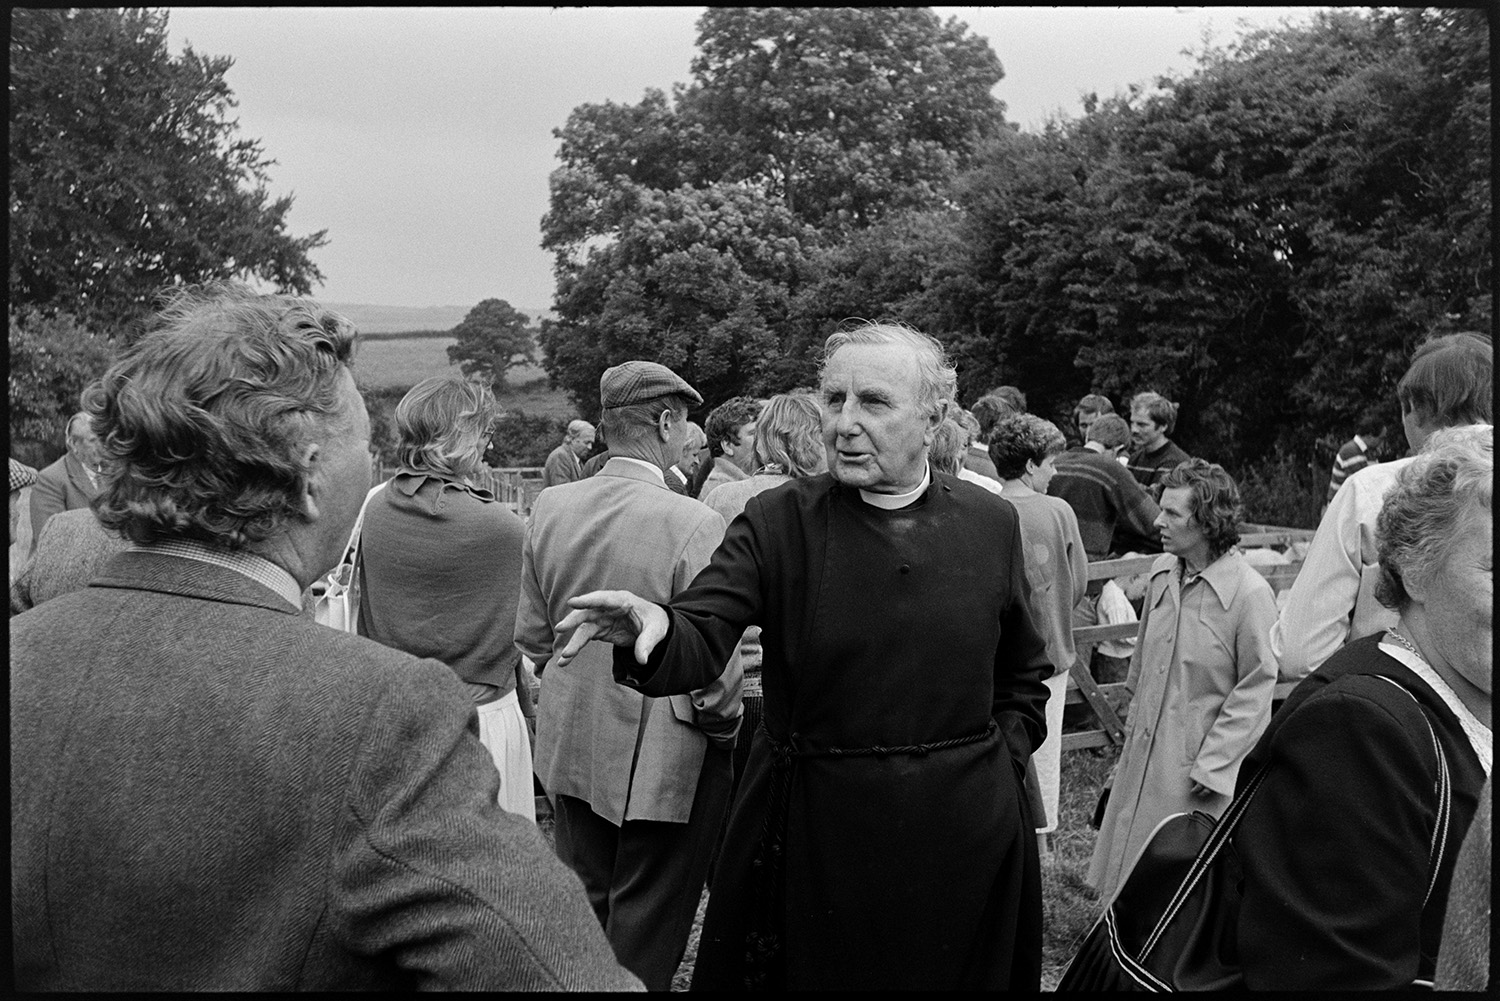 Sheep sale at fair, onlookers and vicar chatting to crowd.<br /> [The Reverend John Richards talking to a man at the sheep sale at Chulmleigh Fair. Other people are gathered around in the background.]